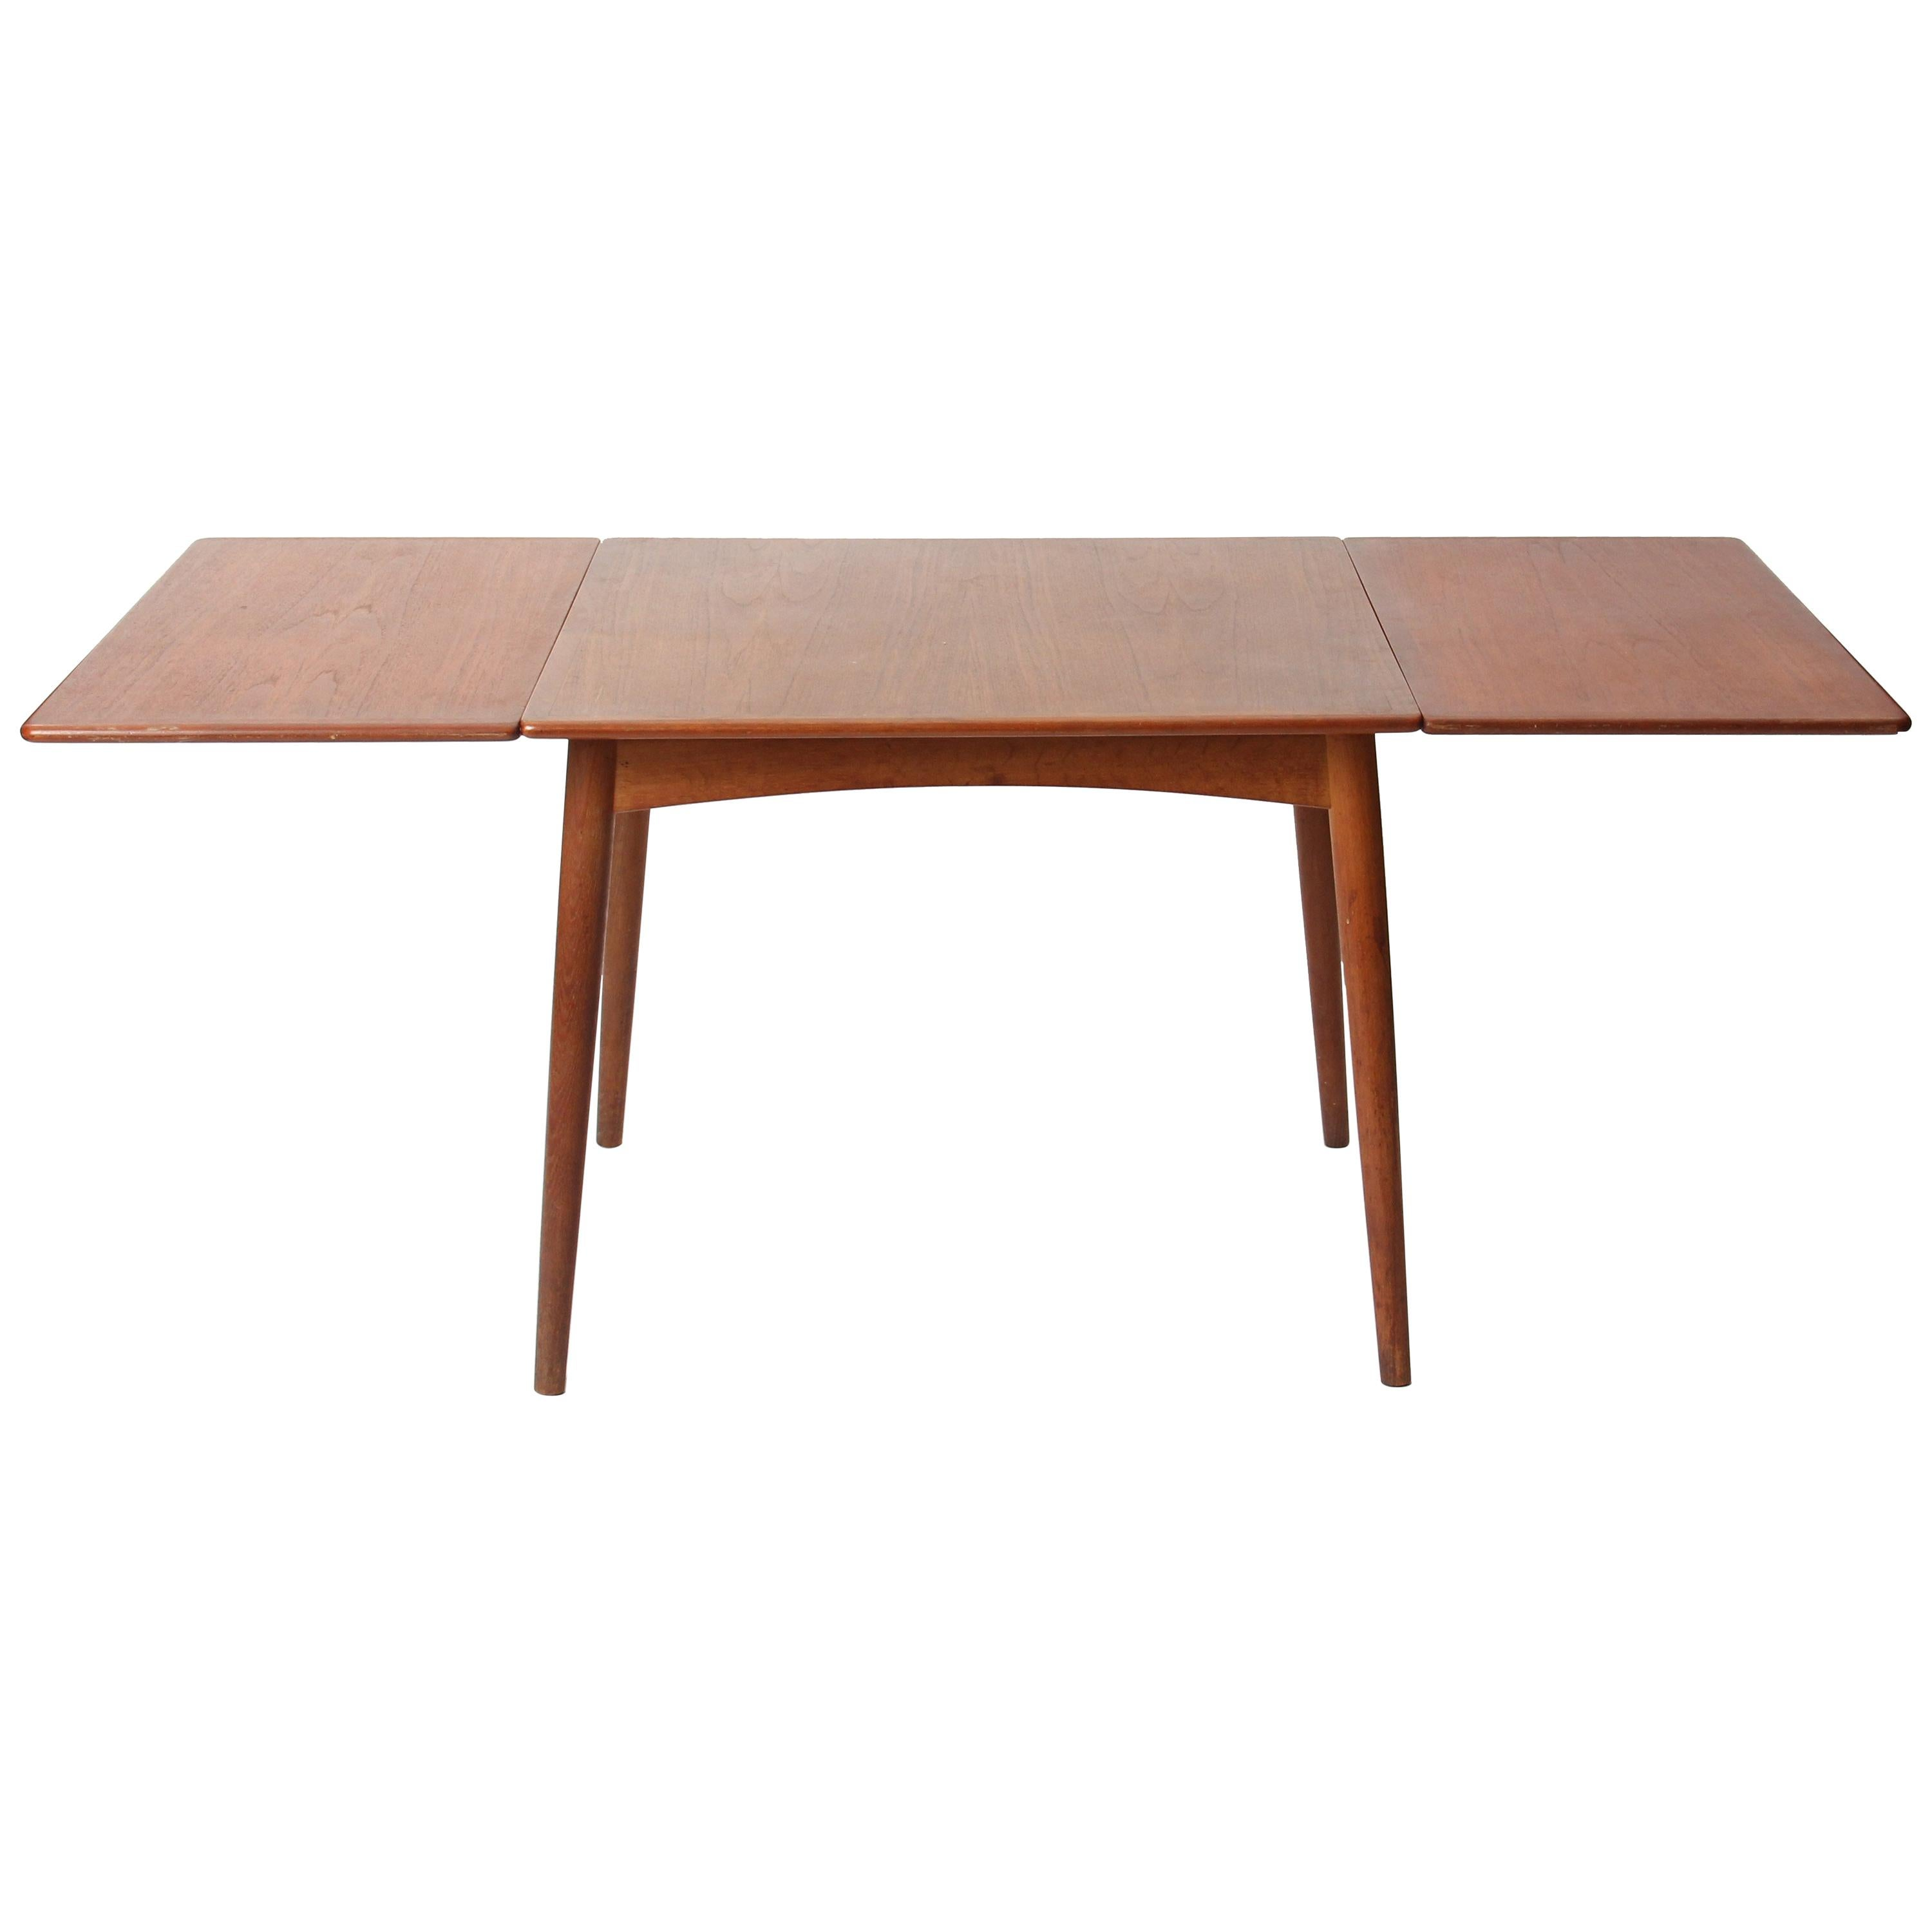 Drop-leaf Dining Table by Hans J. Wegner for Andreas Tuck